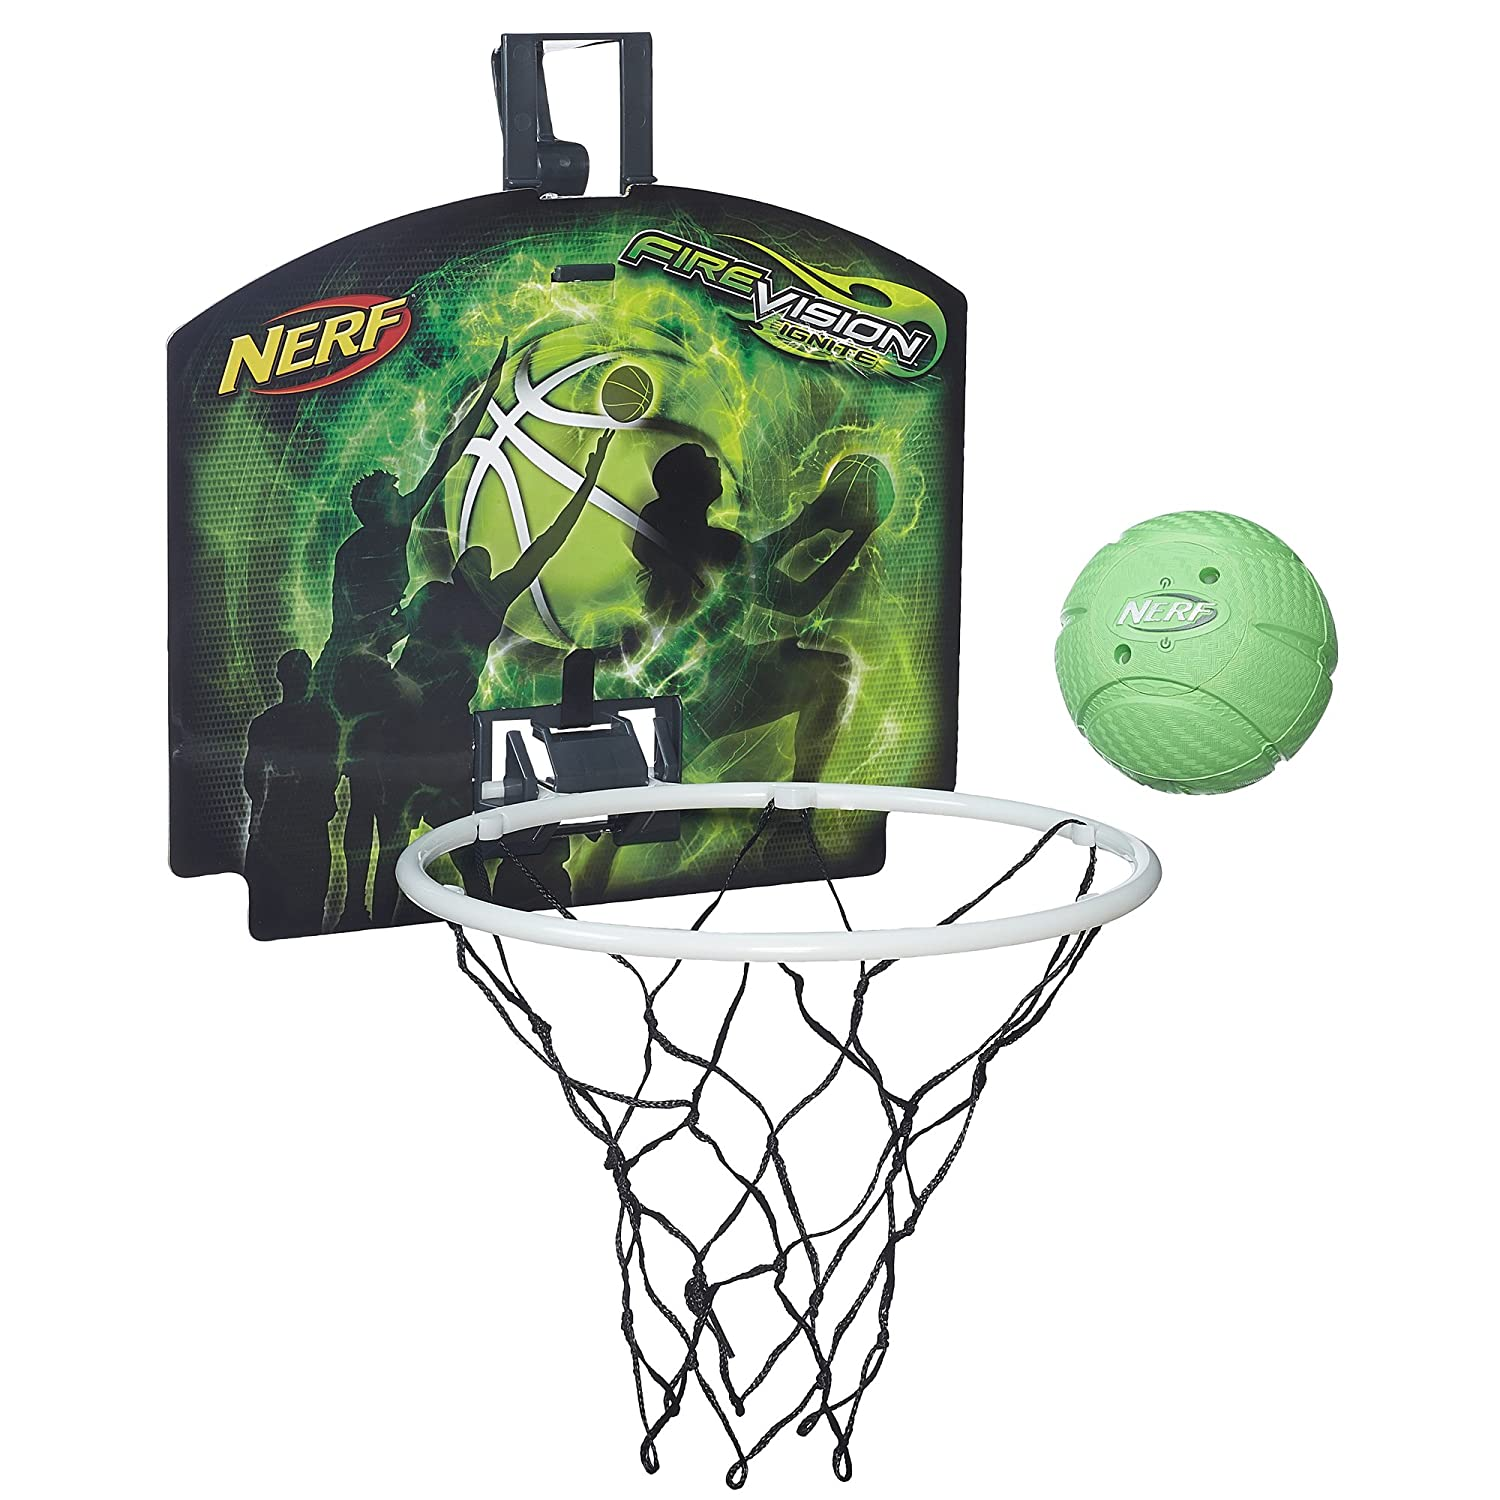 Amazon.com: Nerf Fire Vision Ignite Nerfoop Set: Toys & Games